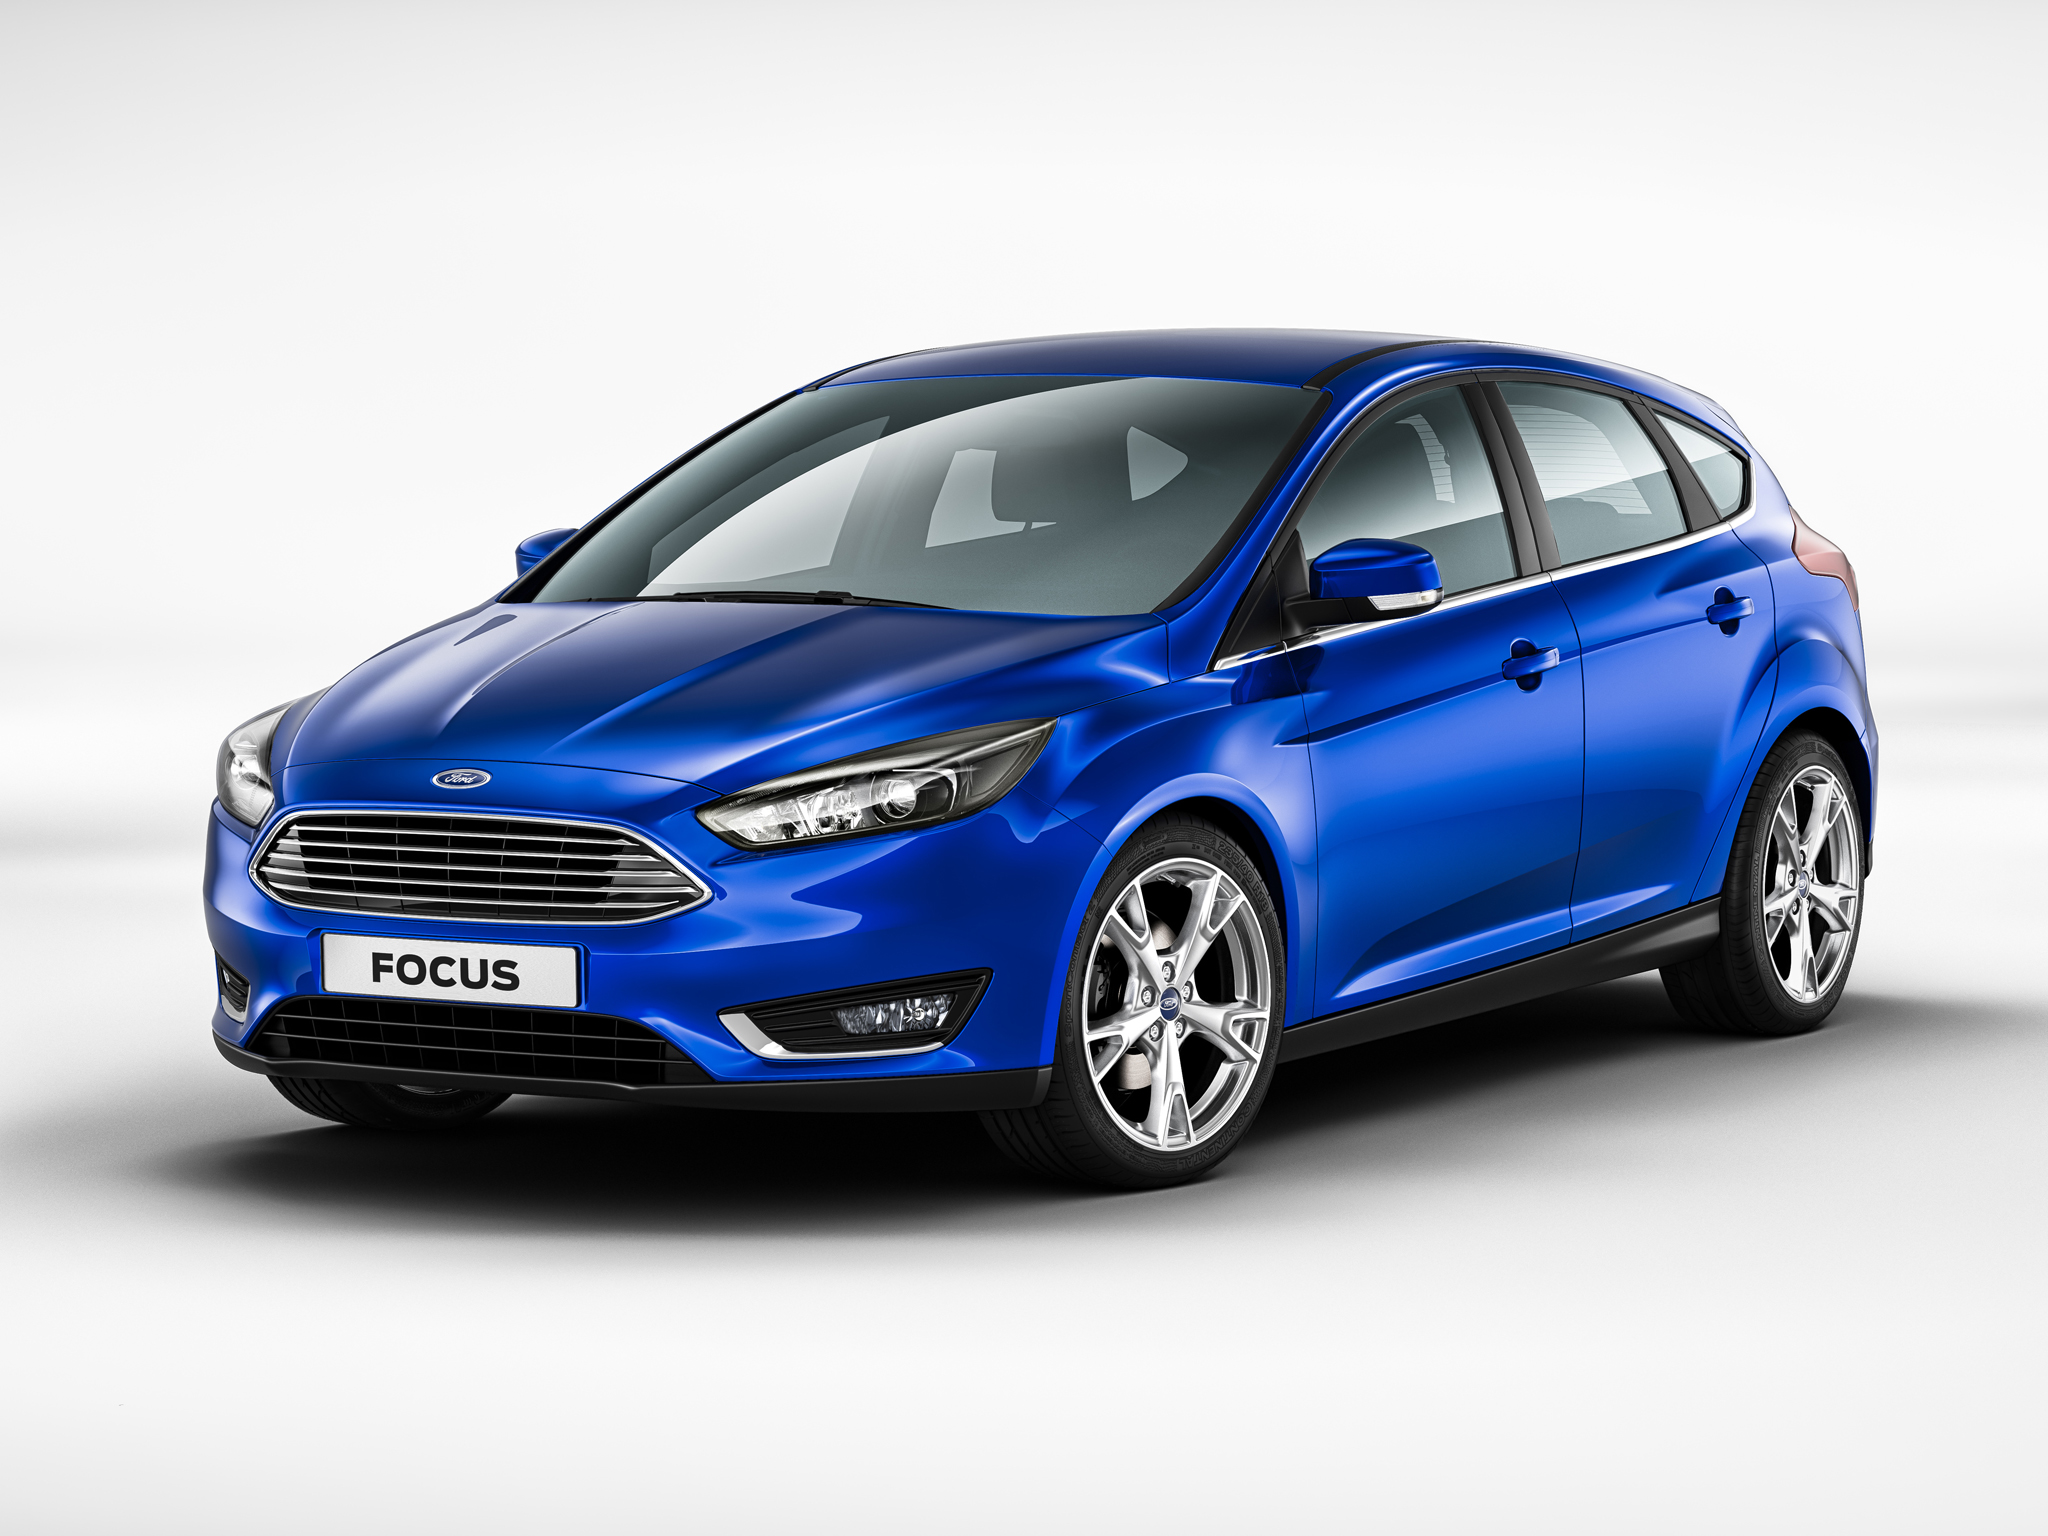 2014 ford focus facelift hatchback first official photos leaked